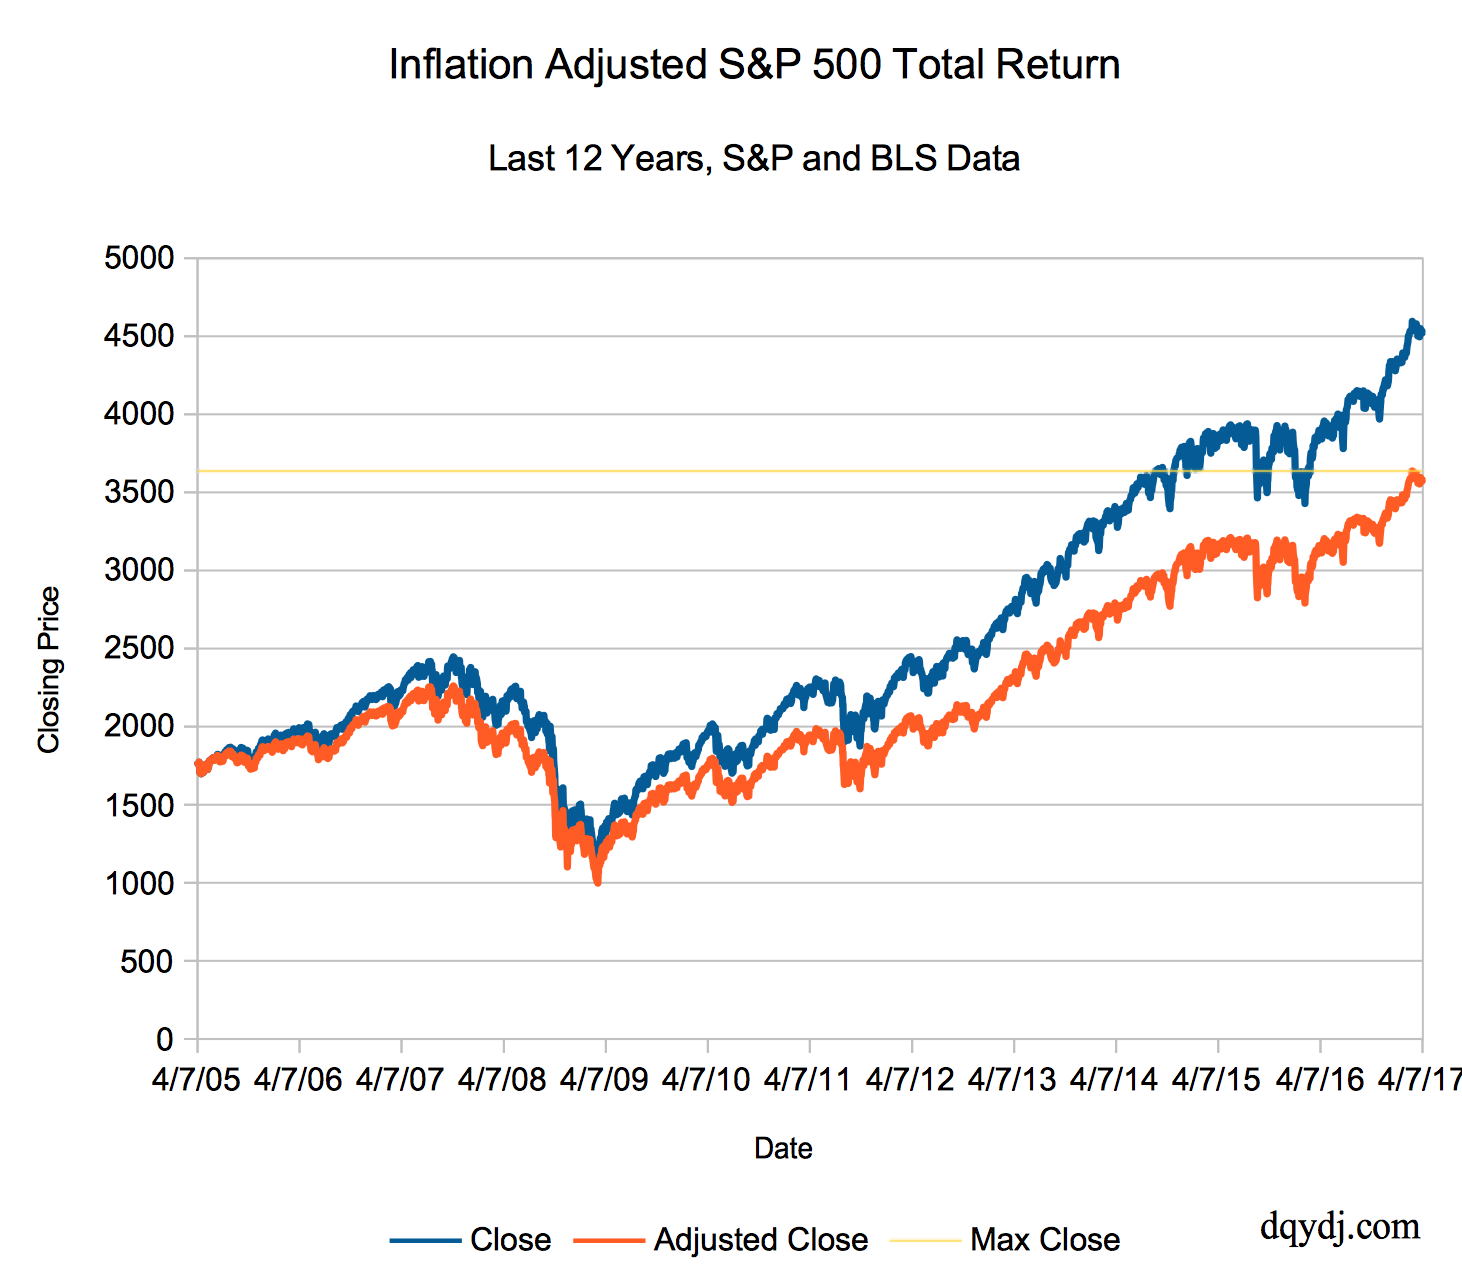 Inflation and Dividend Adjusted S&P 500 Closing Price through 4/7/2017